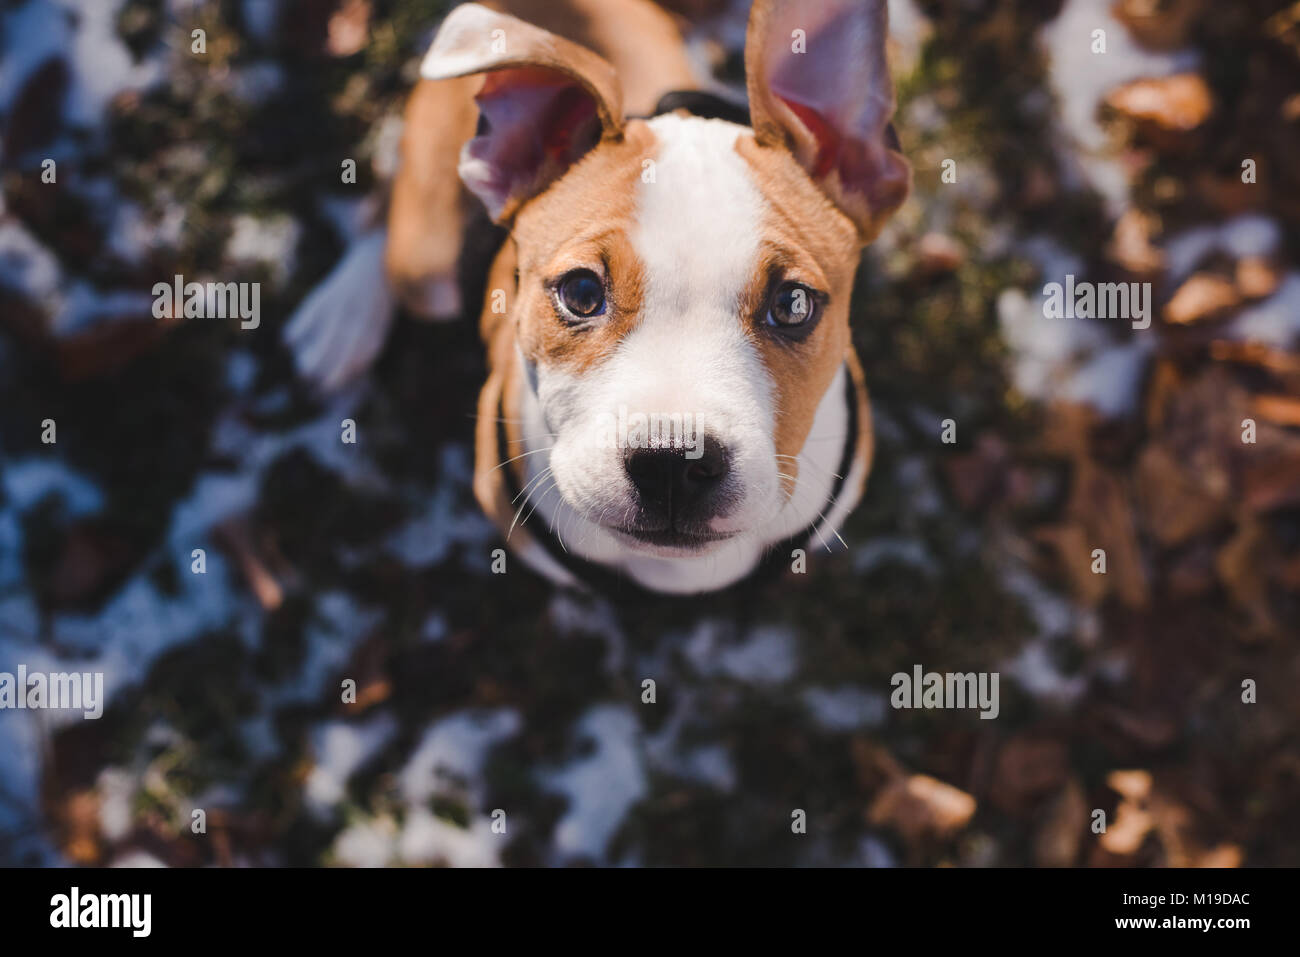 A 11 week old beagle mix puppy looks up toward the camera on a sunny day - Stock Image